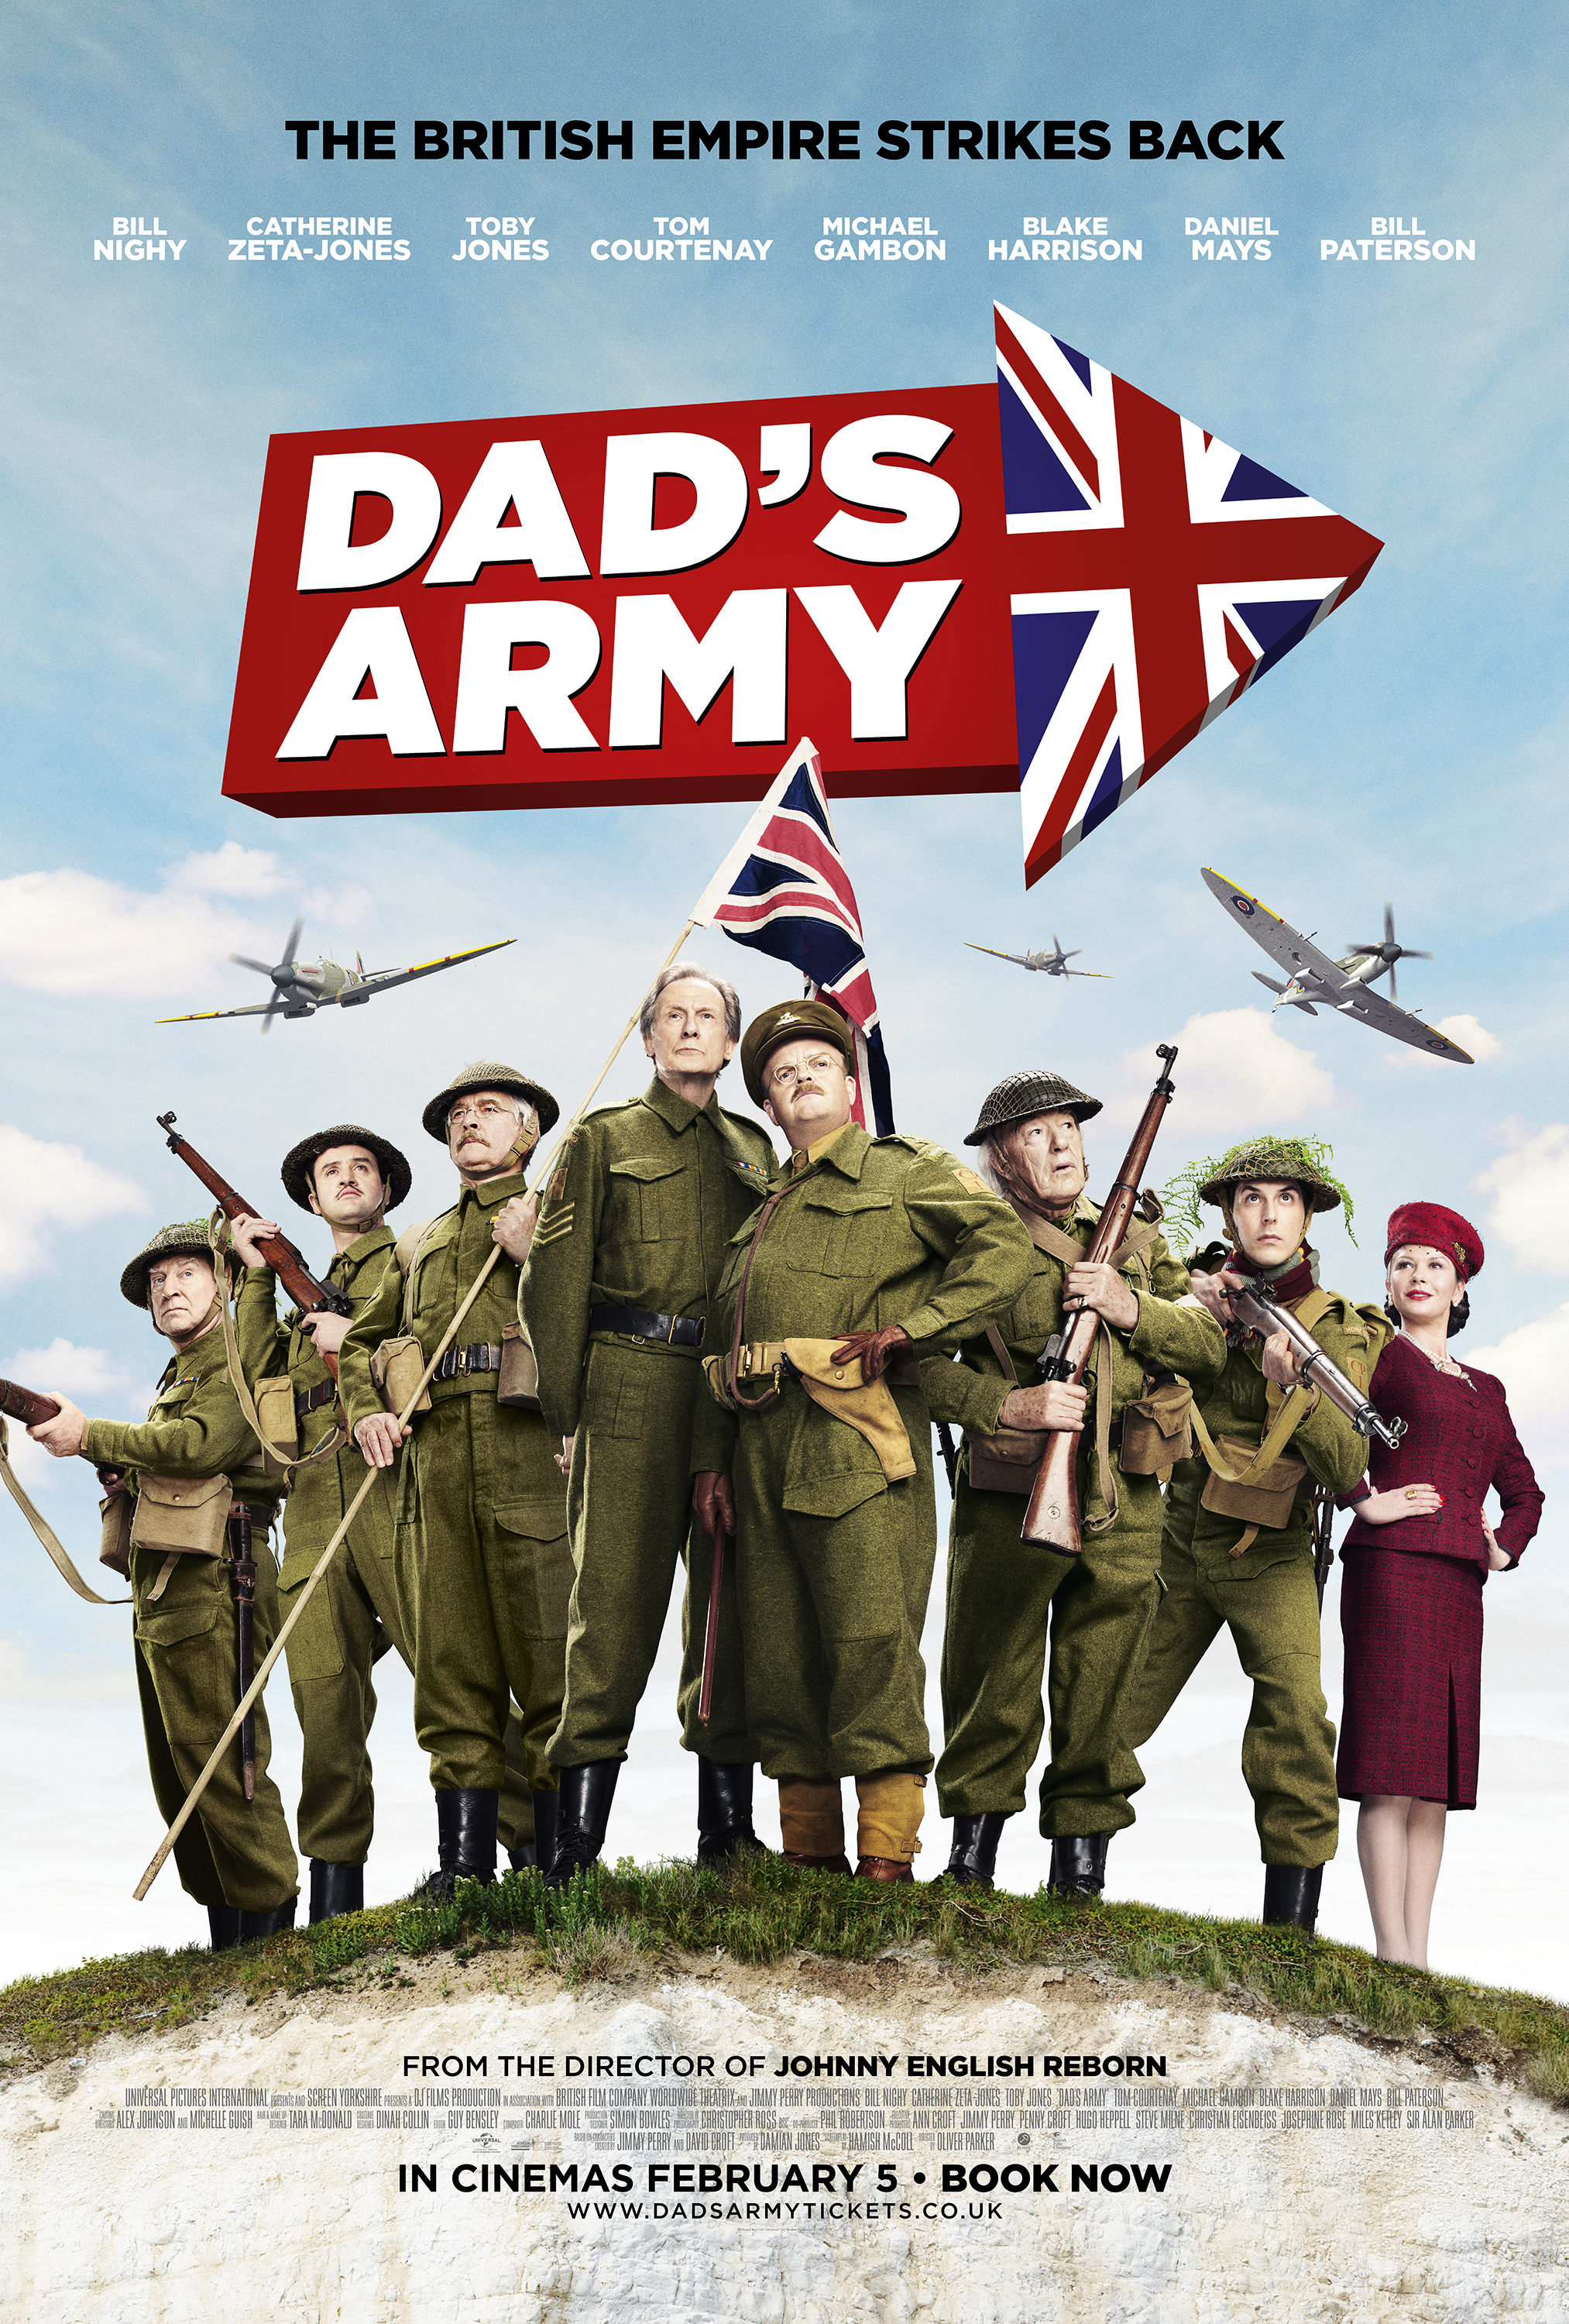 Dad's Army PG, Amy Robsart Hall, Syderstone PE31 8SD | The classic TV show is given an updated, big-screen treatment. | cinema, children